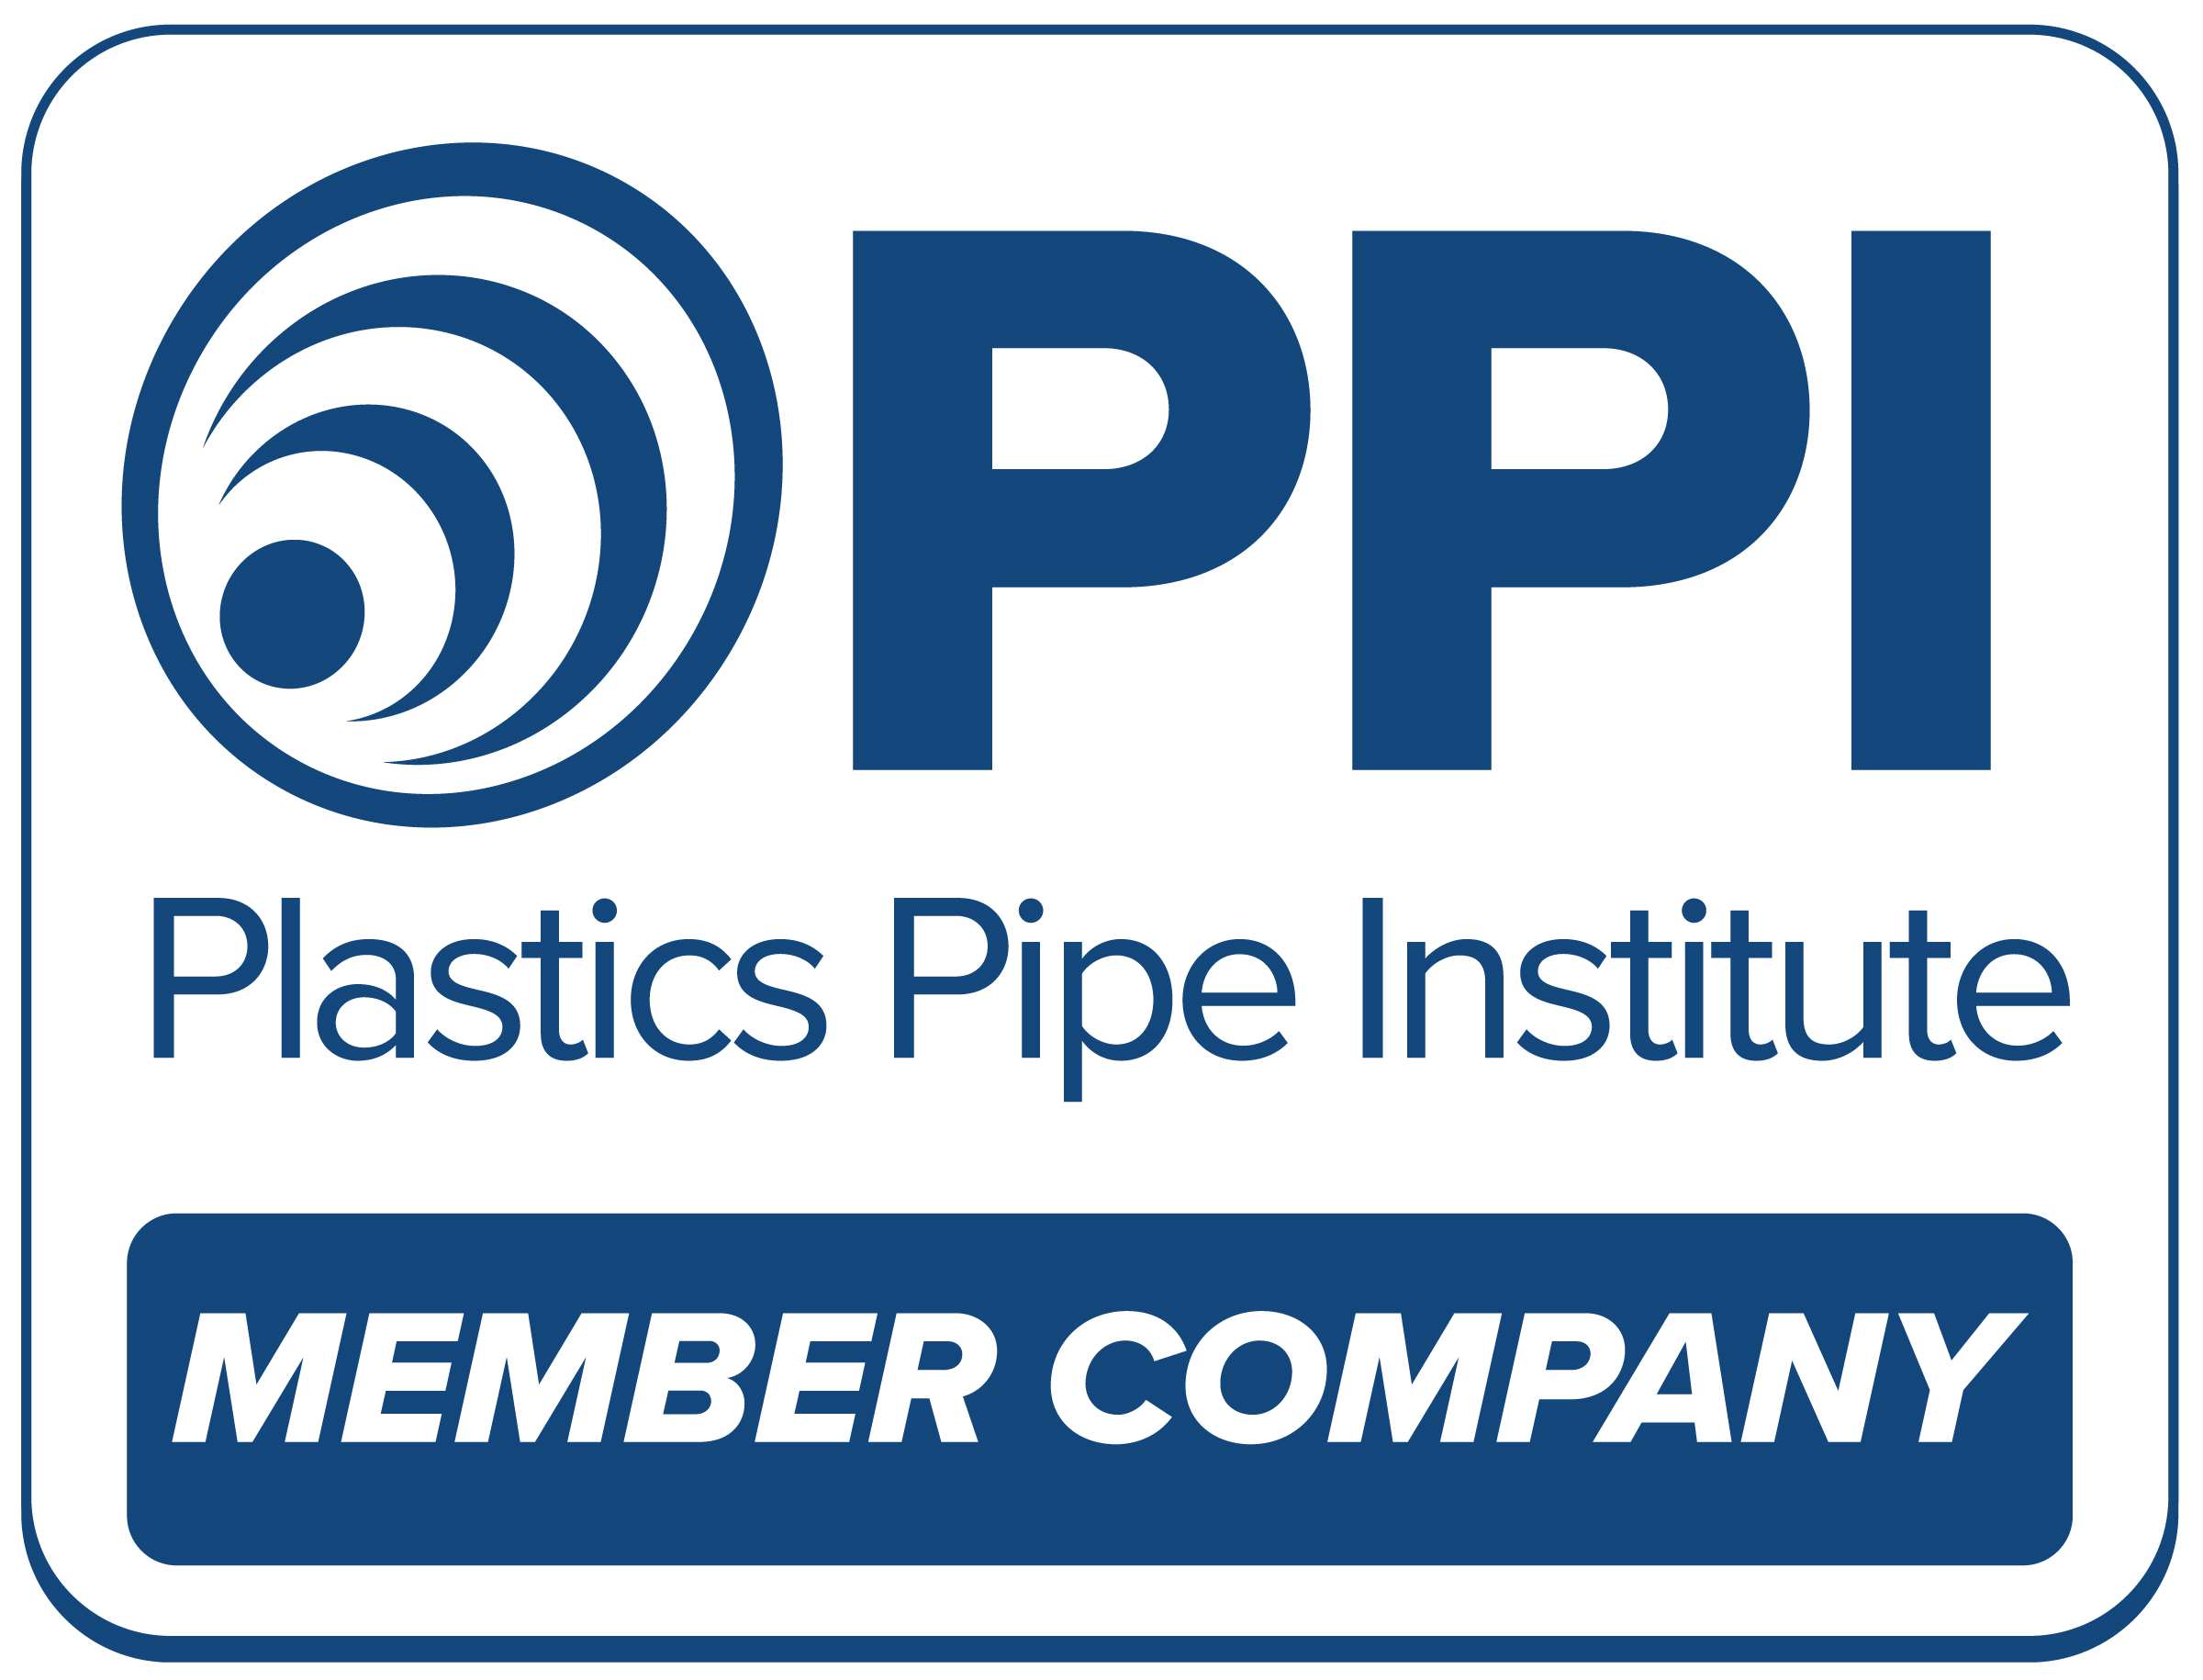 Legend Valve is proudly a member of Plastics Pipe Institute